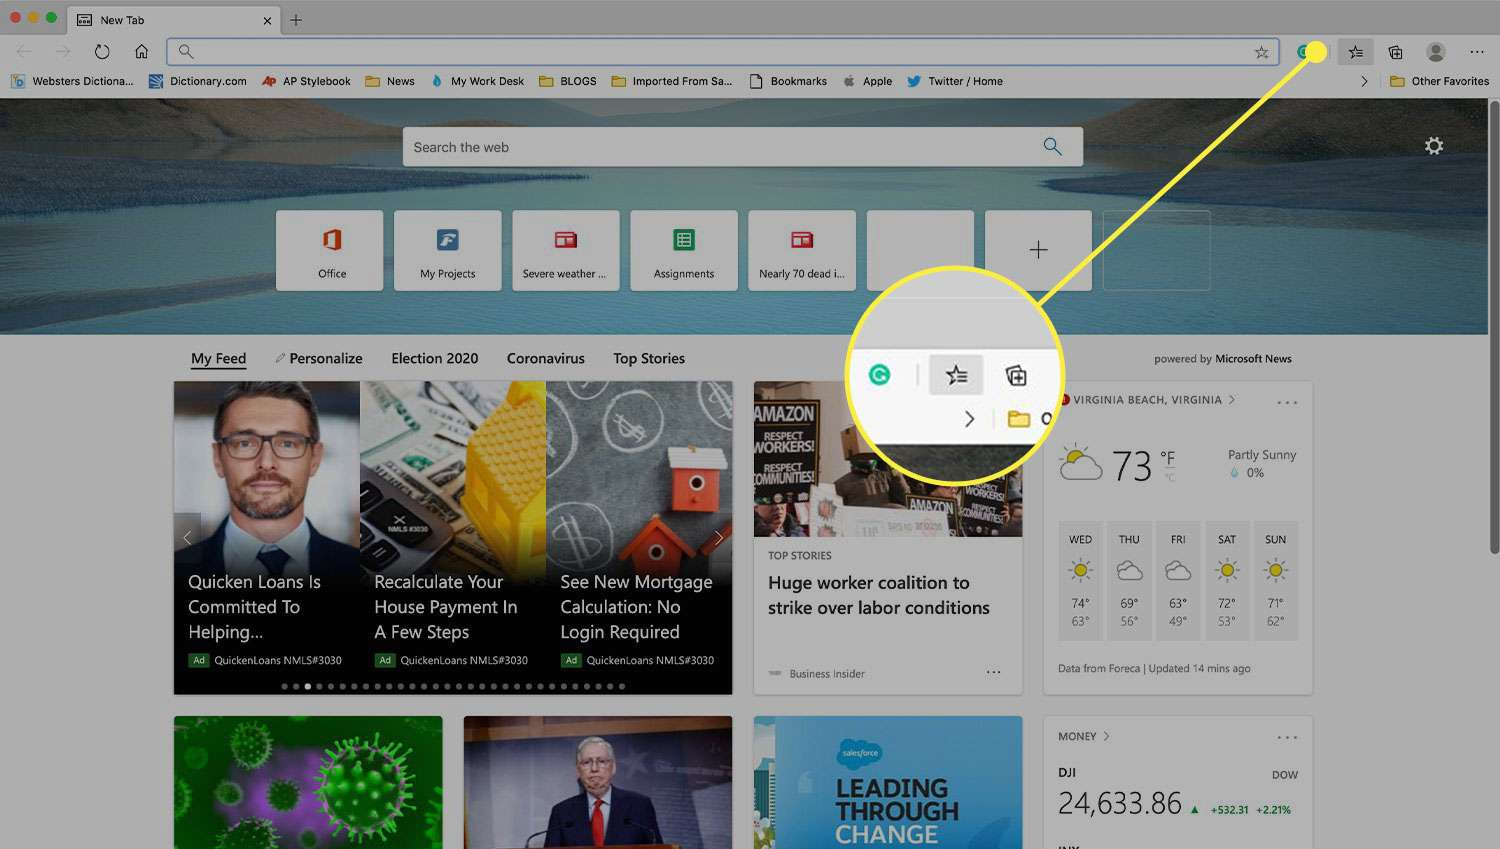 Edge browser window with the Favorites button highlighted